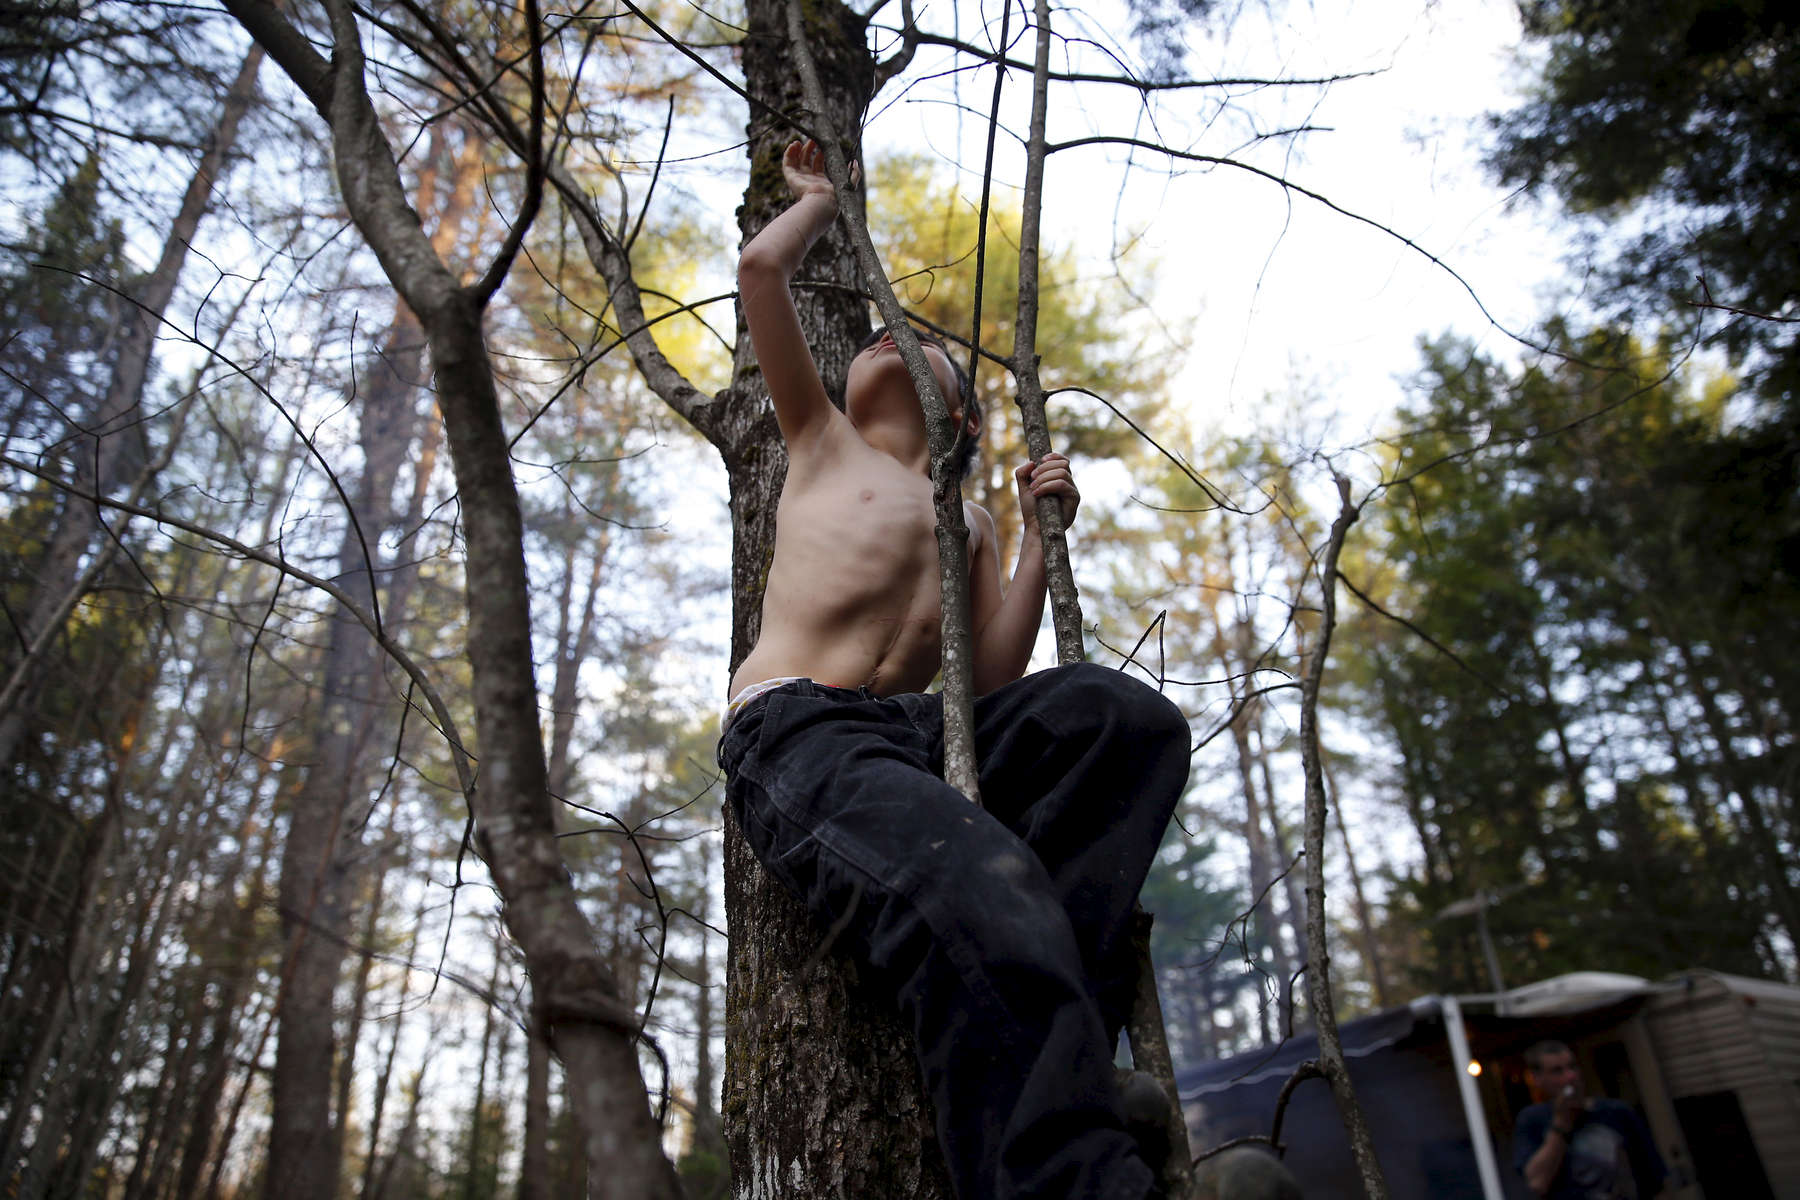 Oxford, Maine -- 5/4/2015-- Strider reached up to grab high on a sapling revealing a scar that snaked its way up his stomach and a dimple that marked the place where a feeding tube had once been as he climbed a tree in the first of several campgrounds that would come to be home throughout the course of the summer. Jessica Rinaldi/Globe Staff